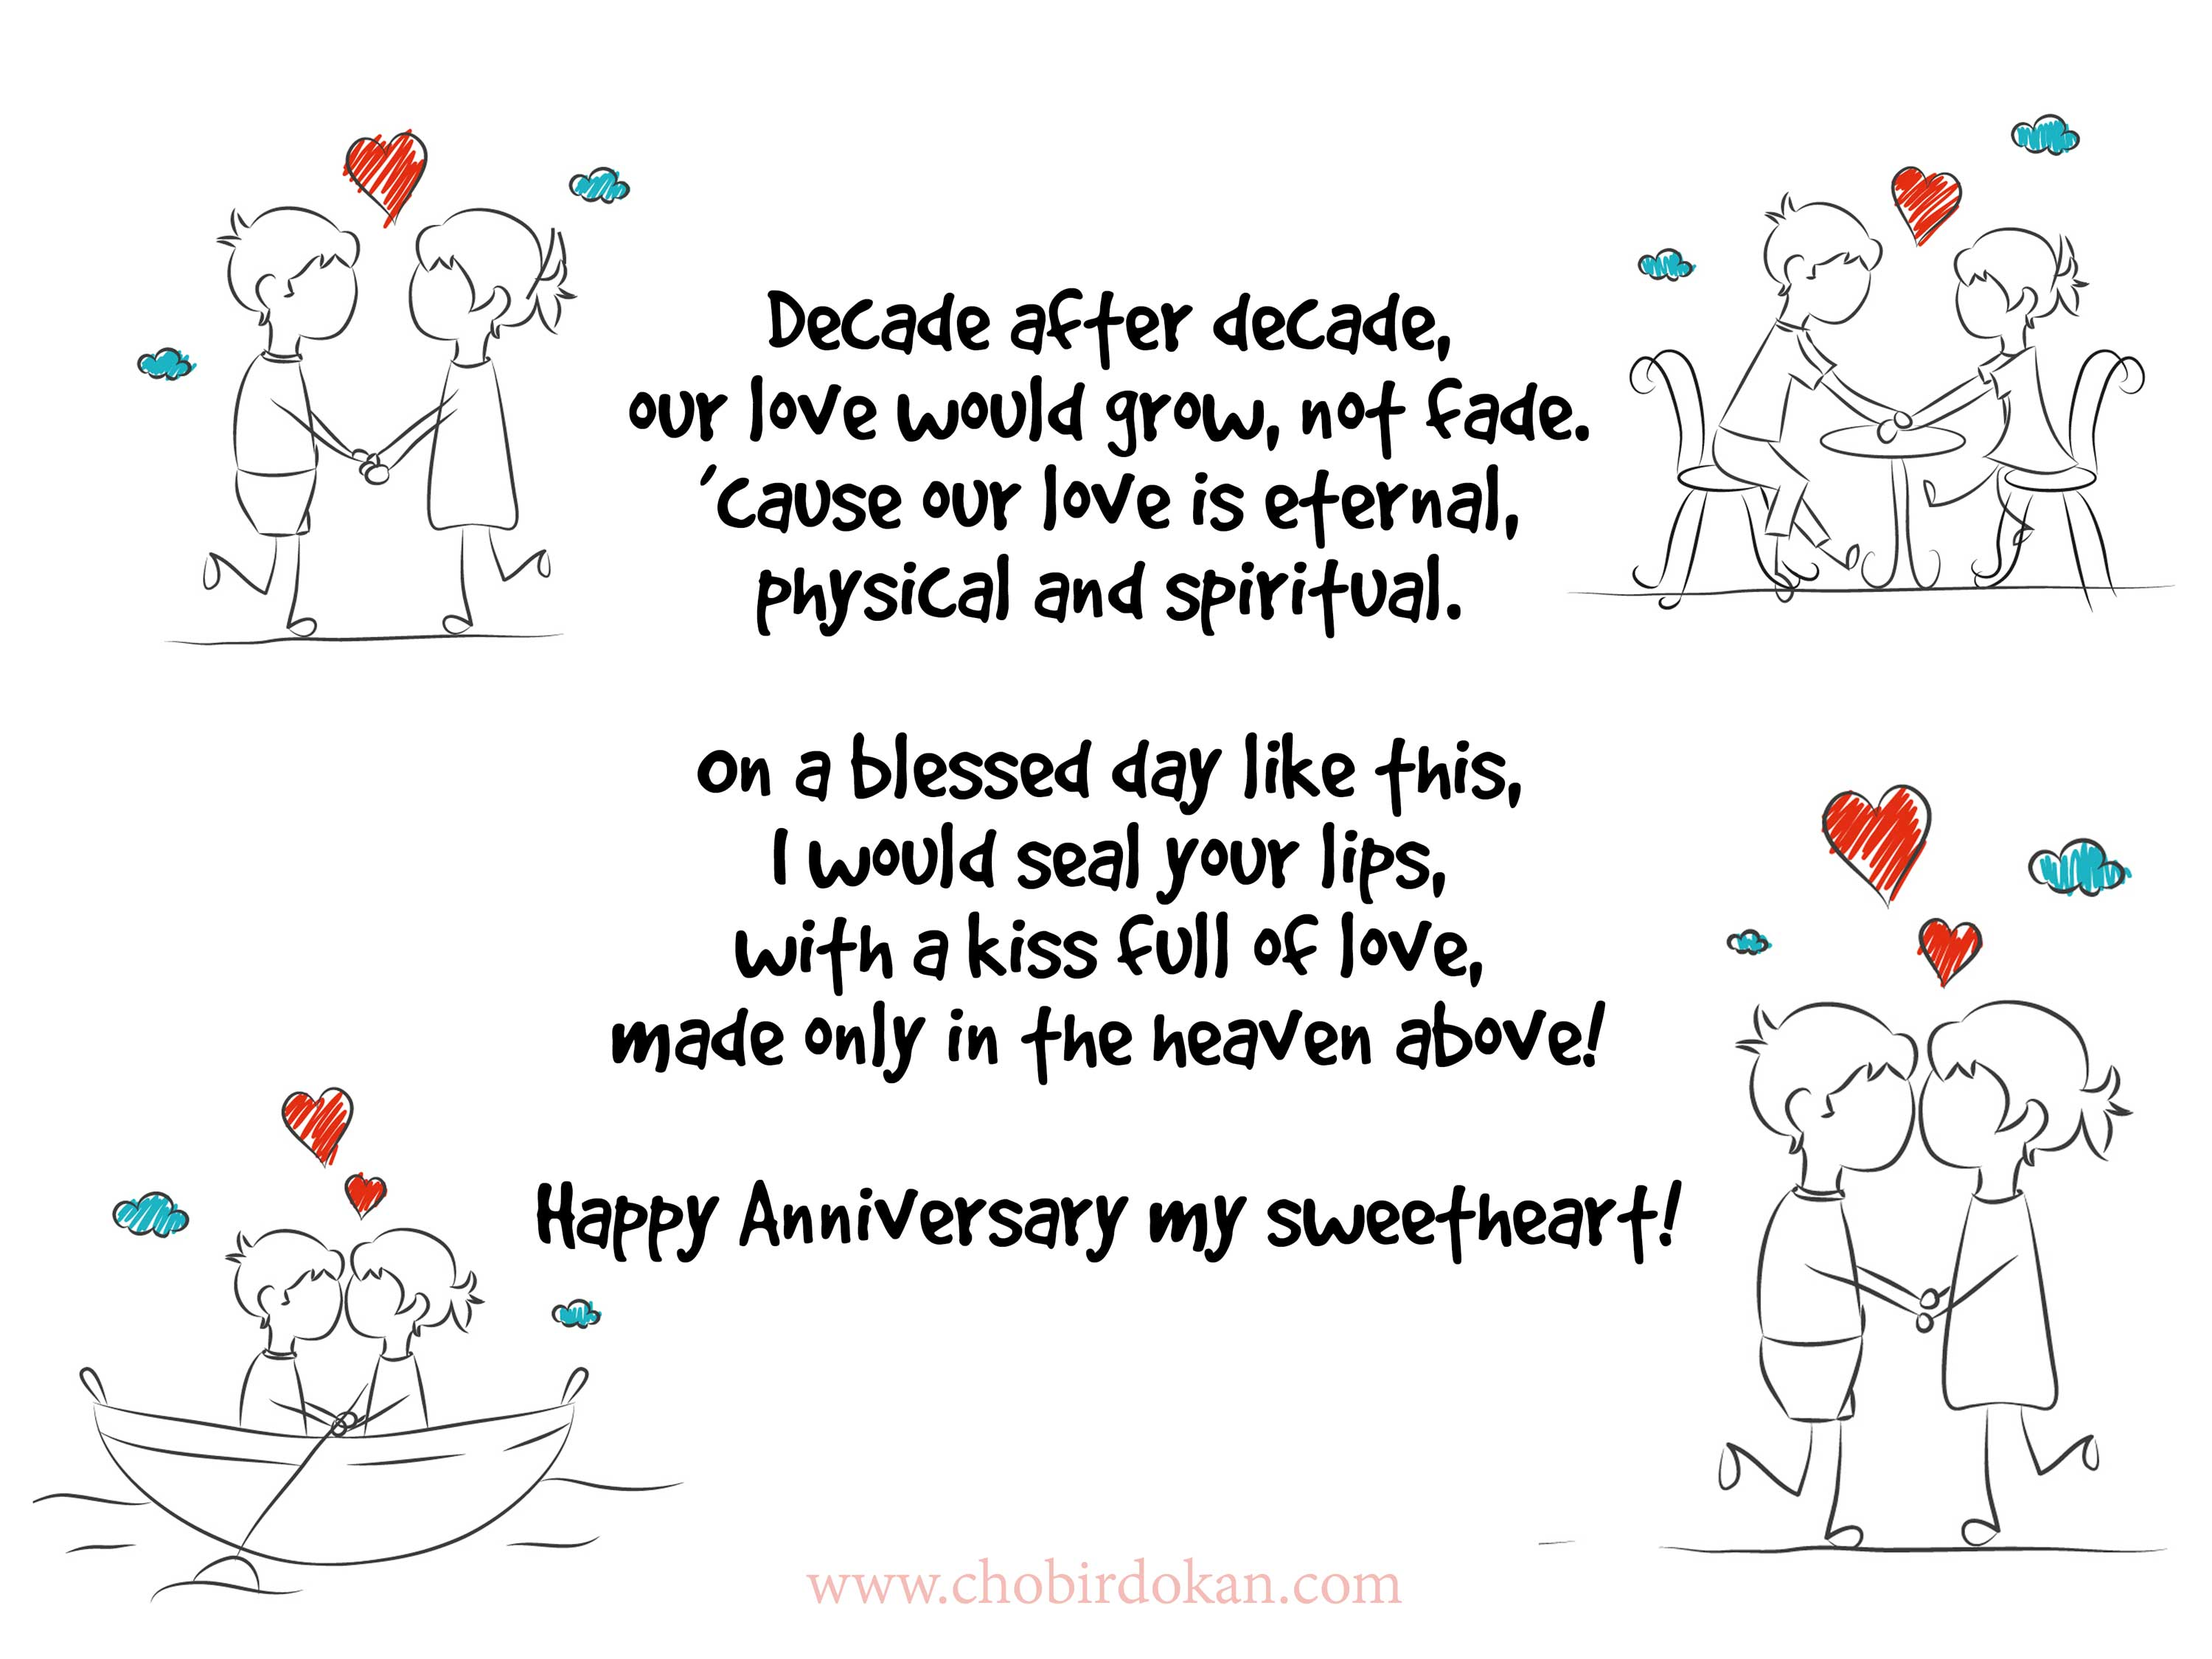 Romantic Anniversary Poems For Her -For Wife Or Girlfriend